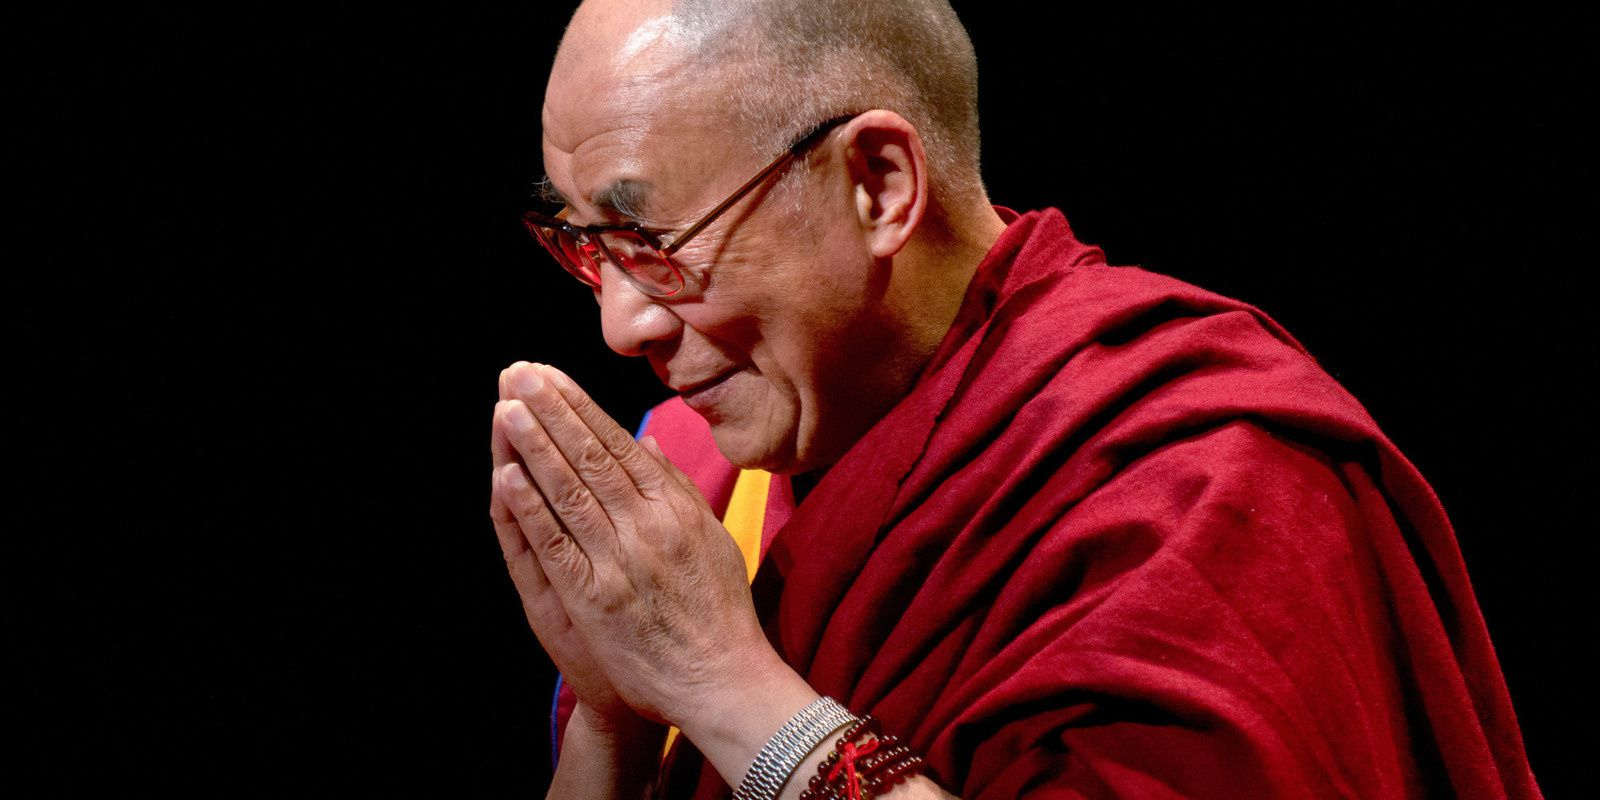 Monk Quotes Wallpaper China Orders Dalai Lama To Reincarnate After Death